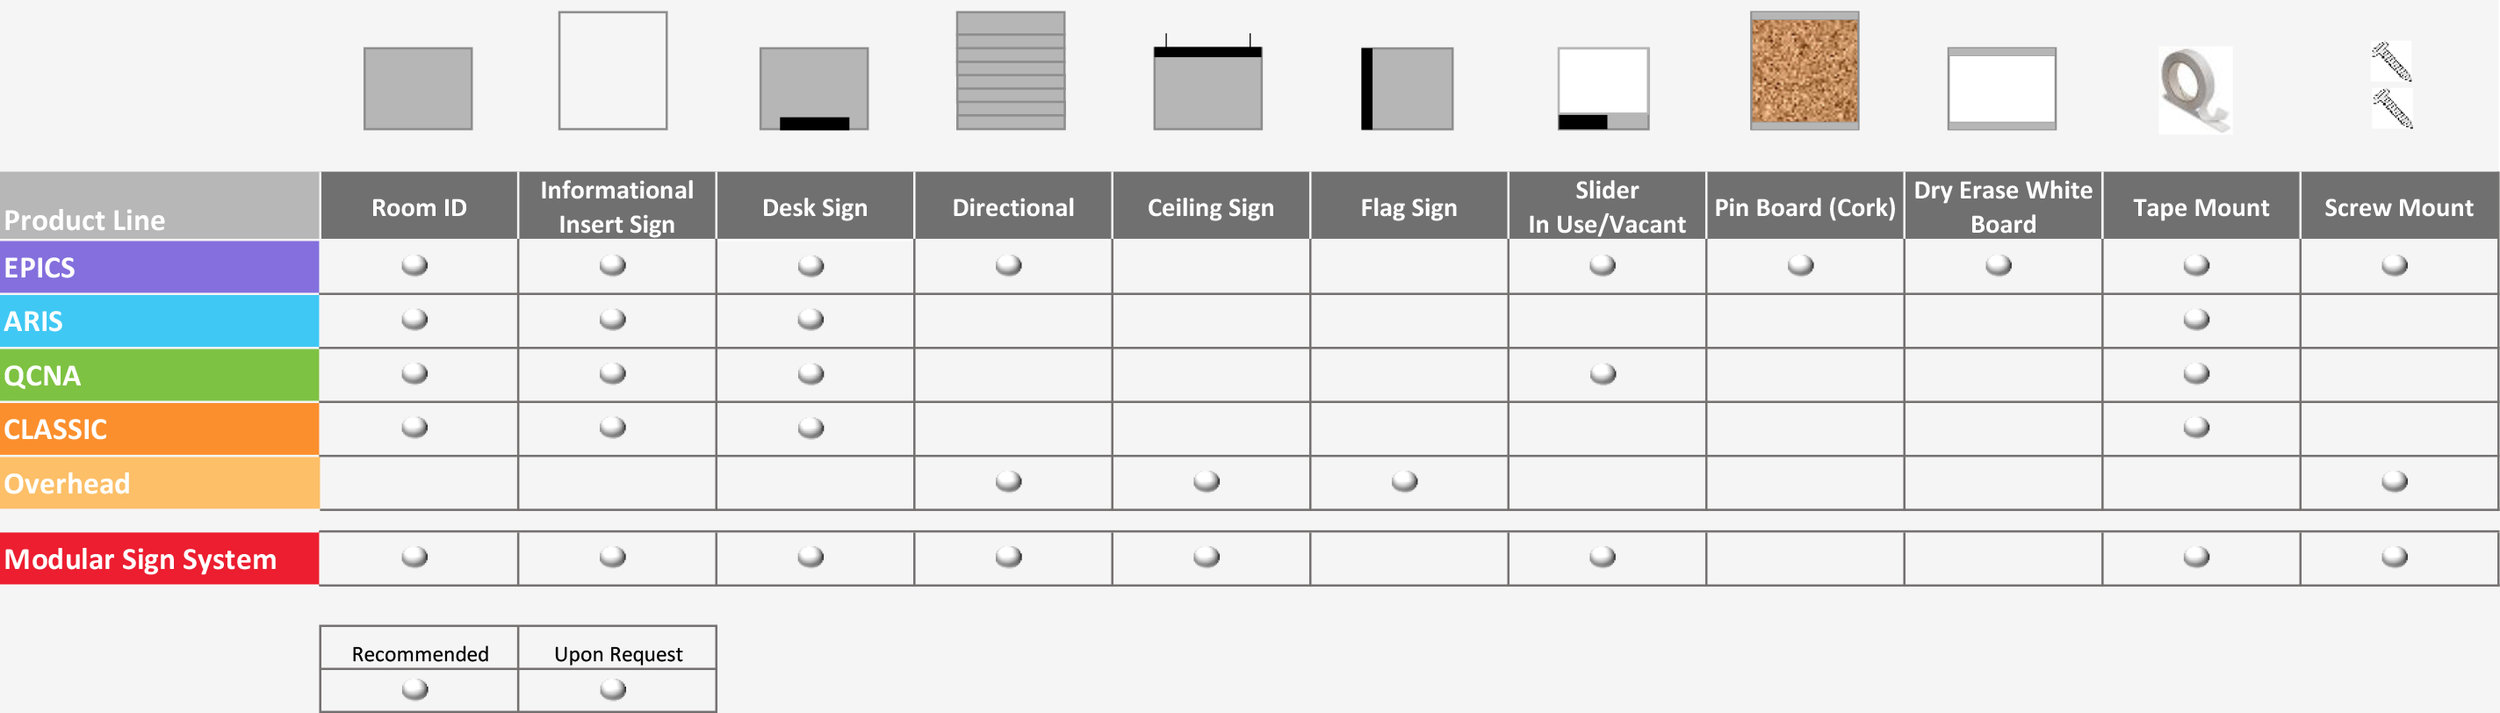 Product Selector V.3-01.png